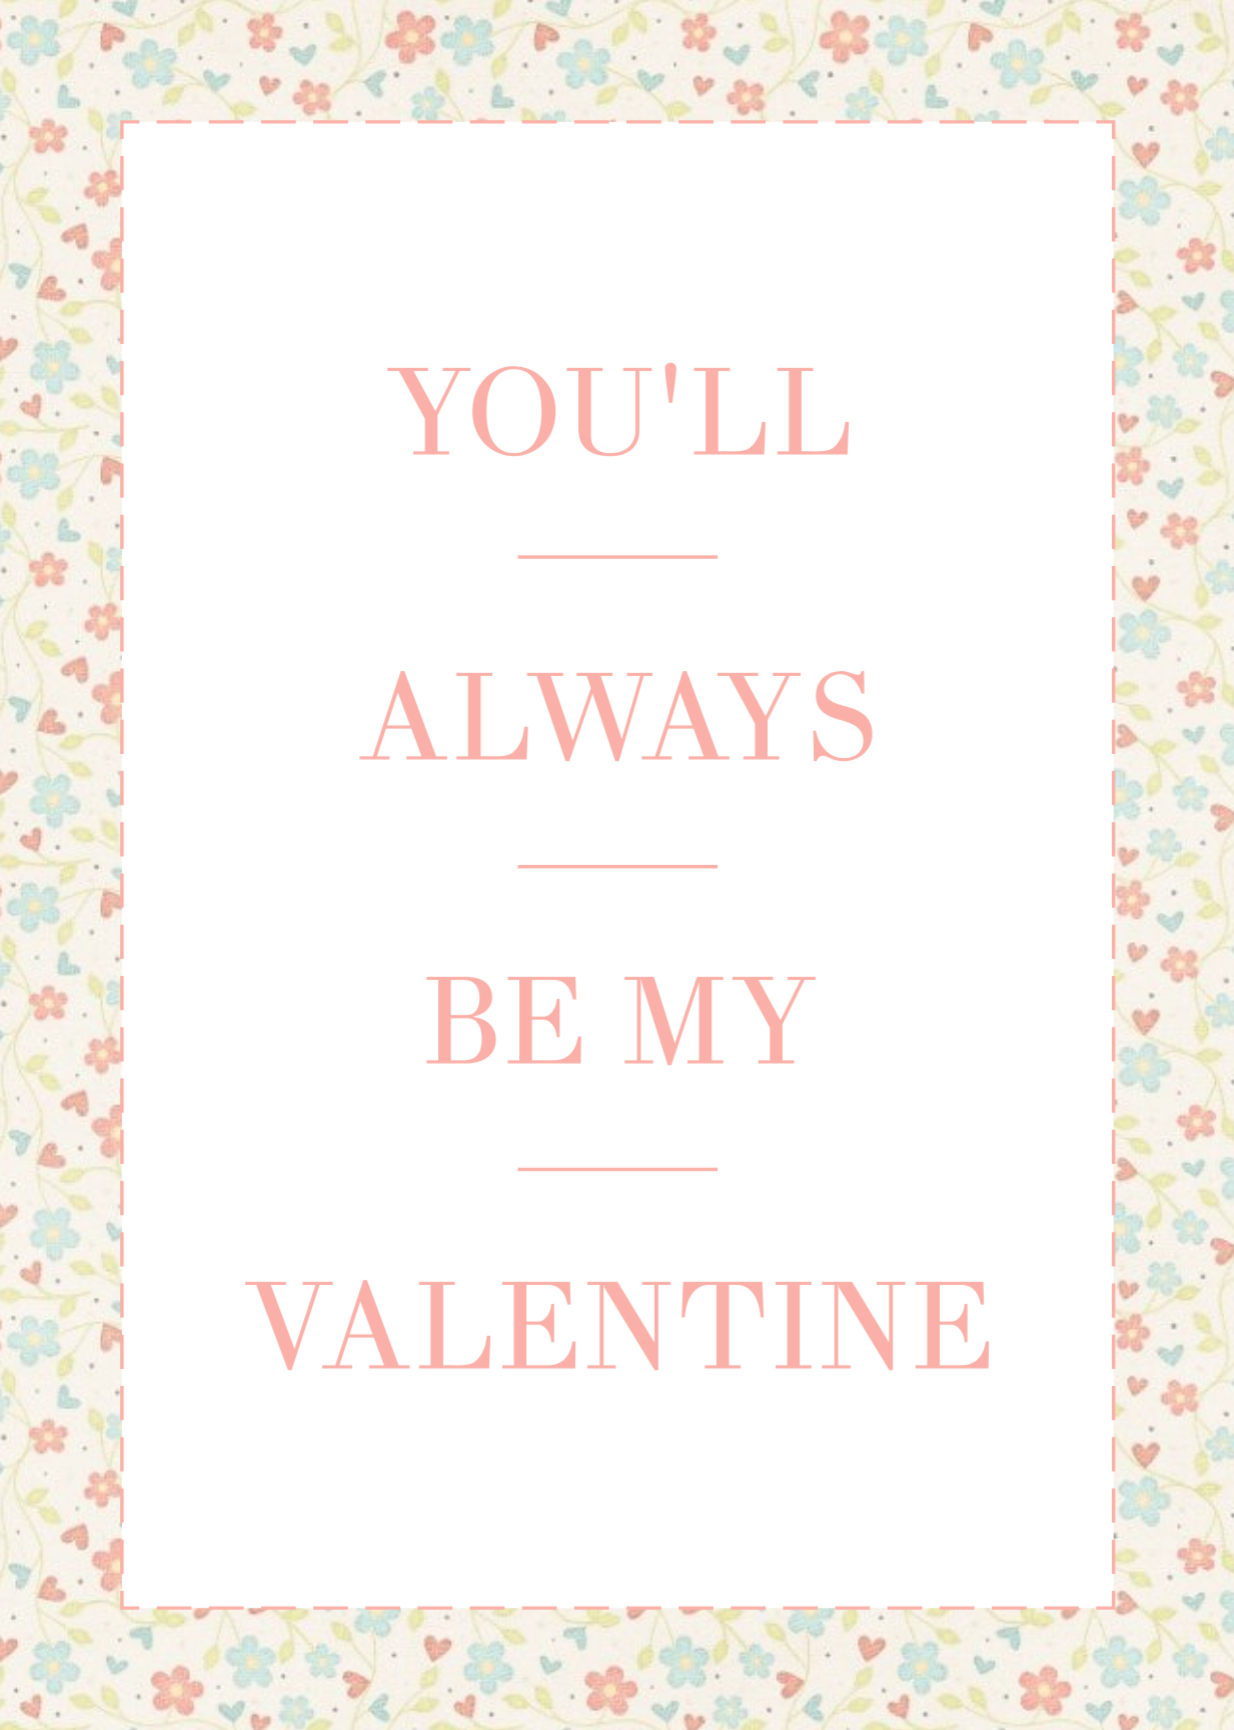 Romantic Valentines Day Postcard Template